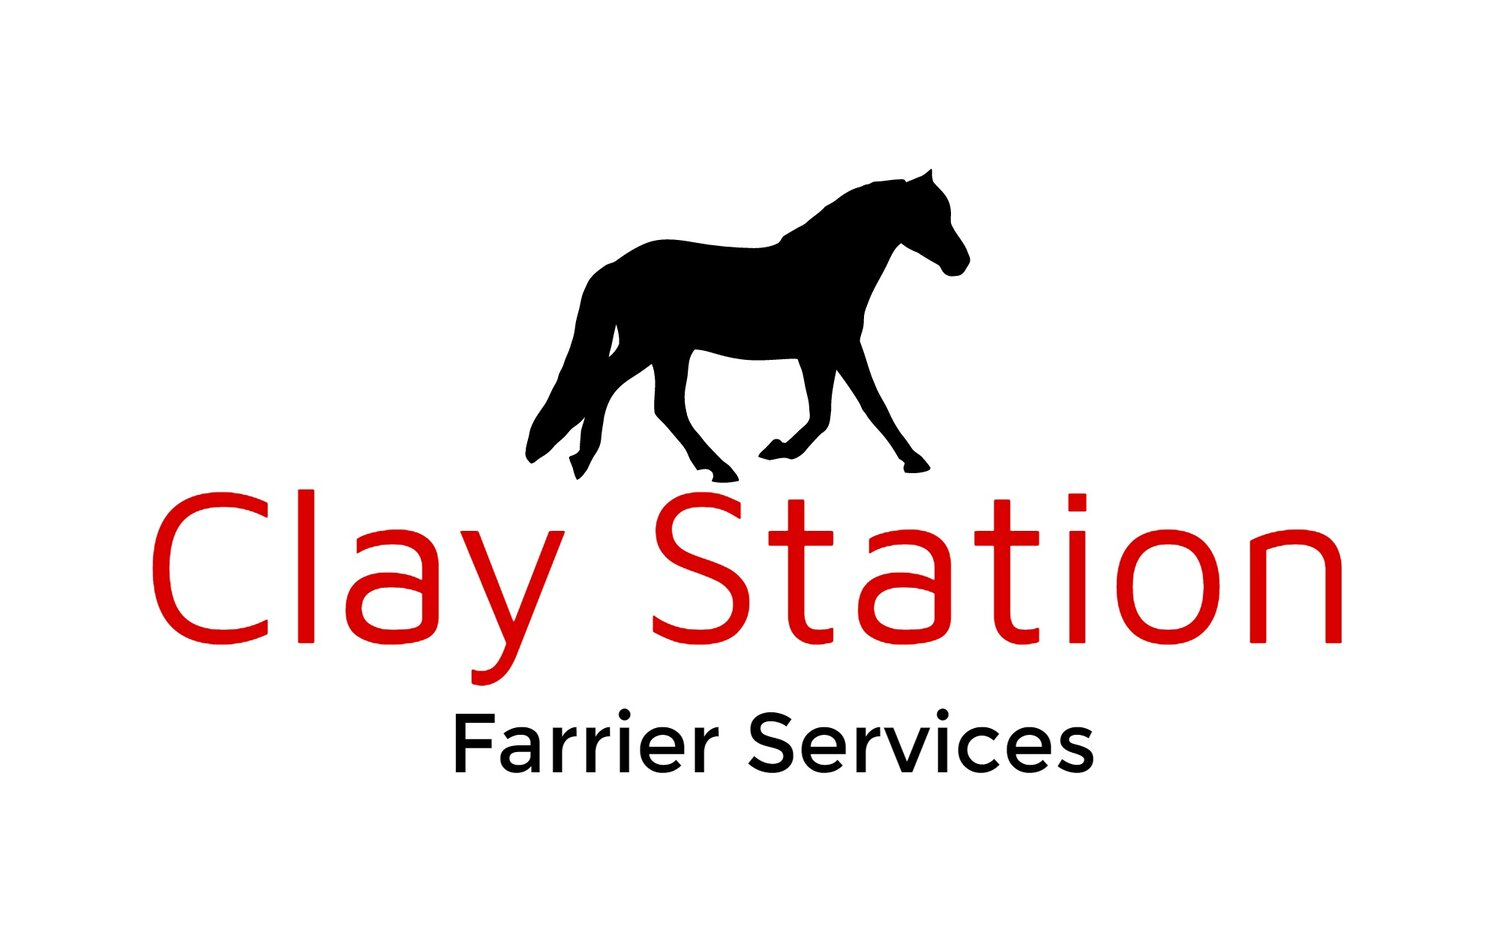 Clay Station